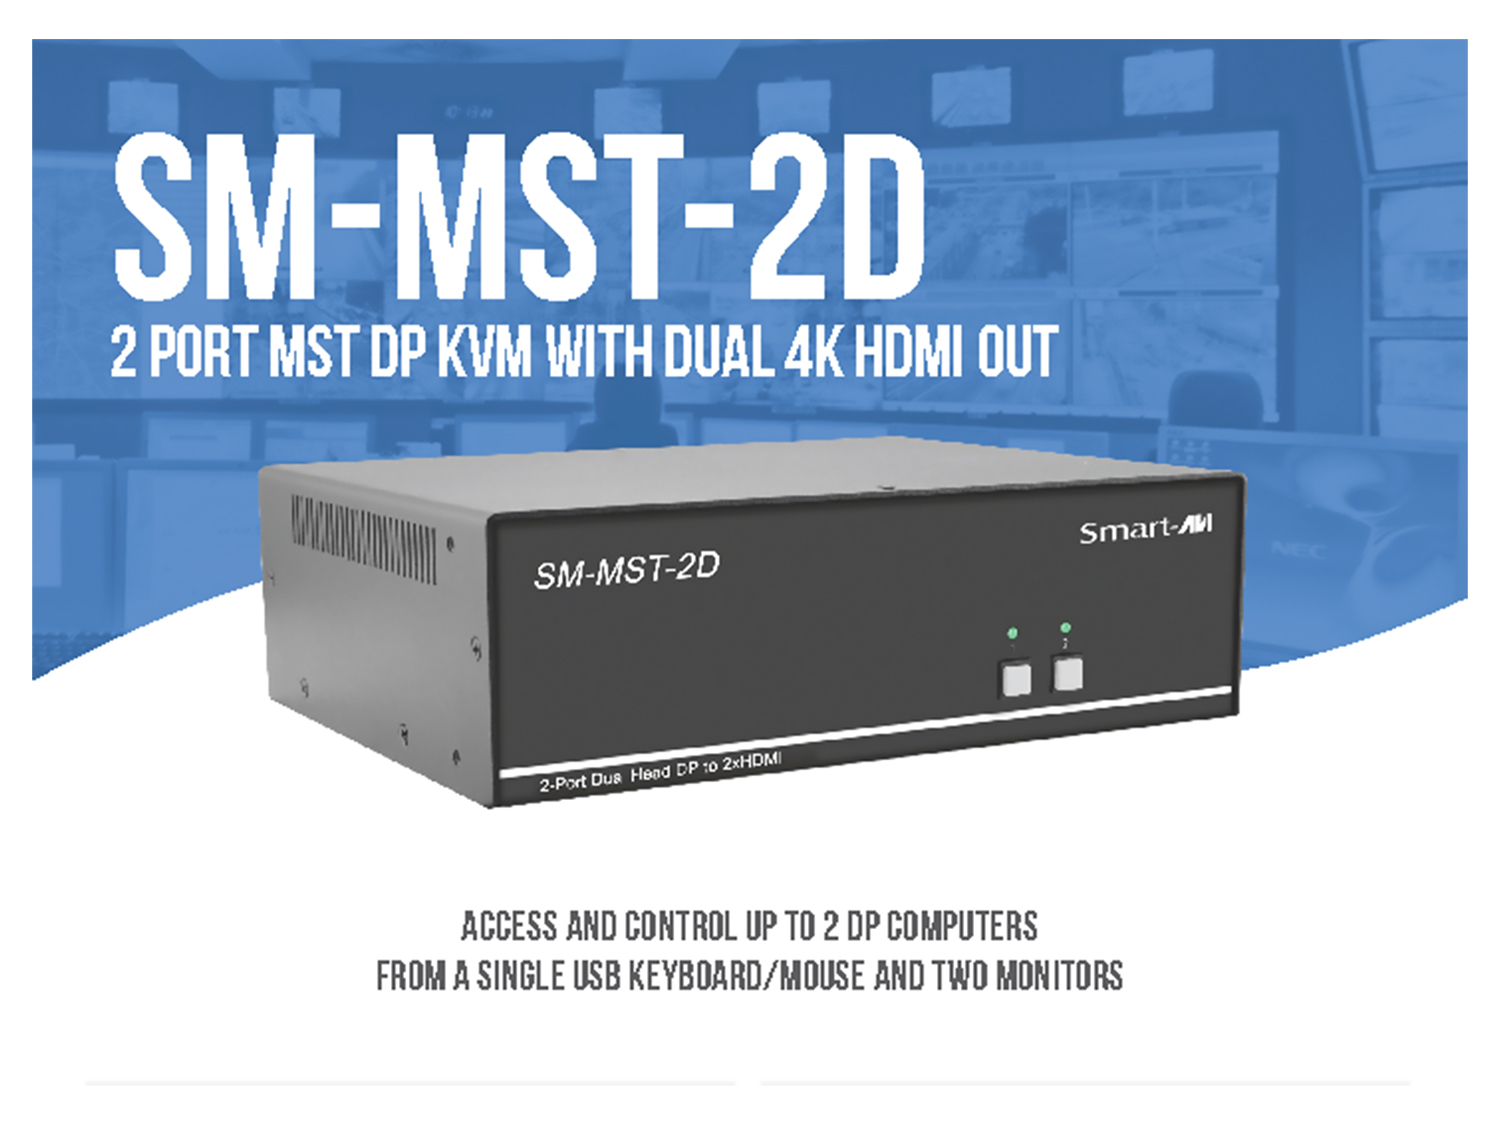 SM-MST-2D Resources